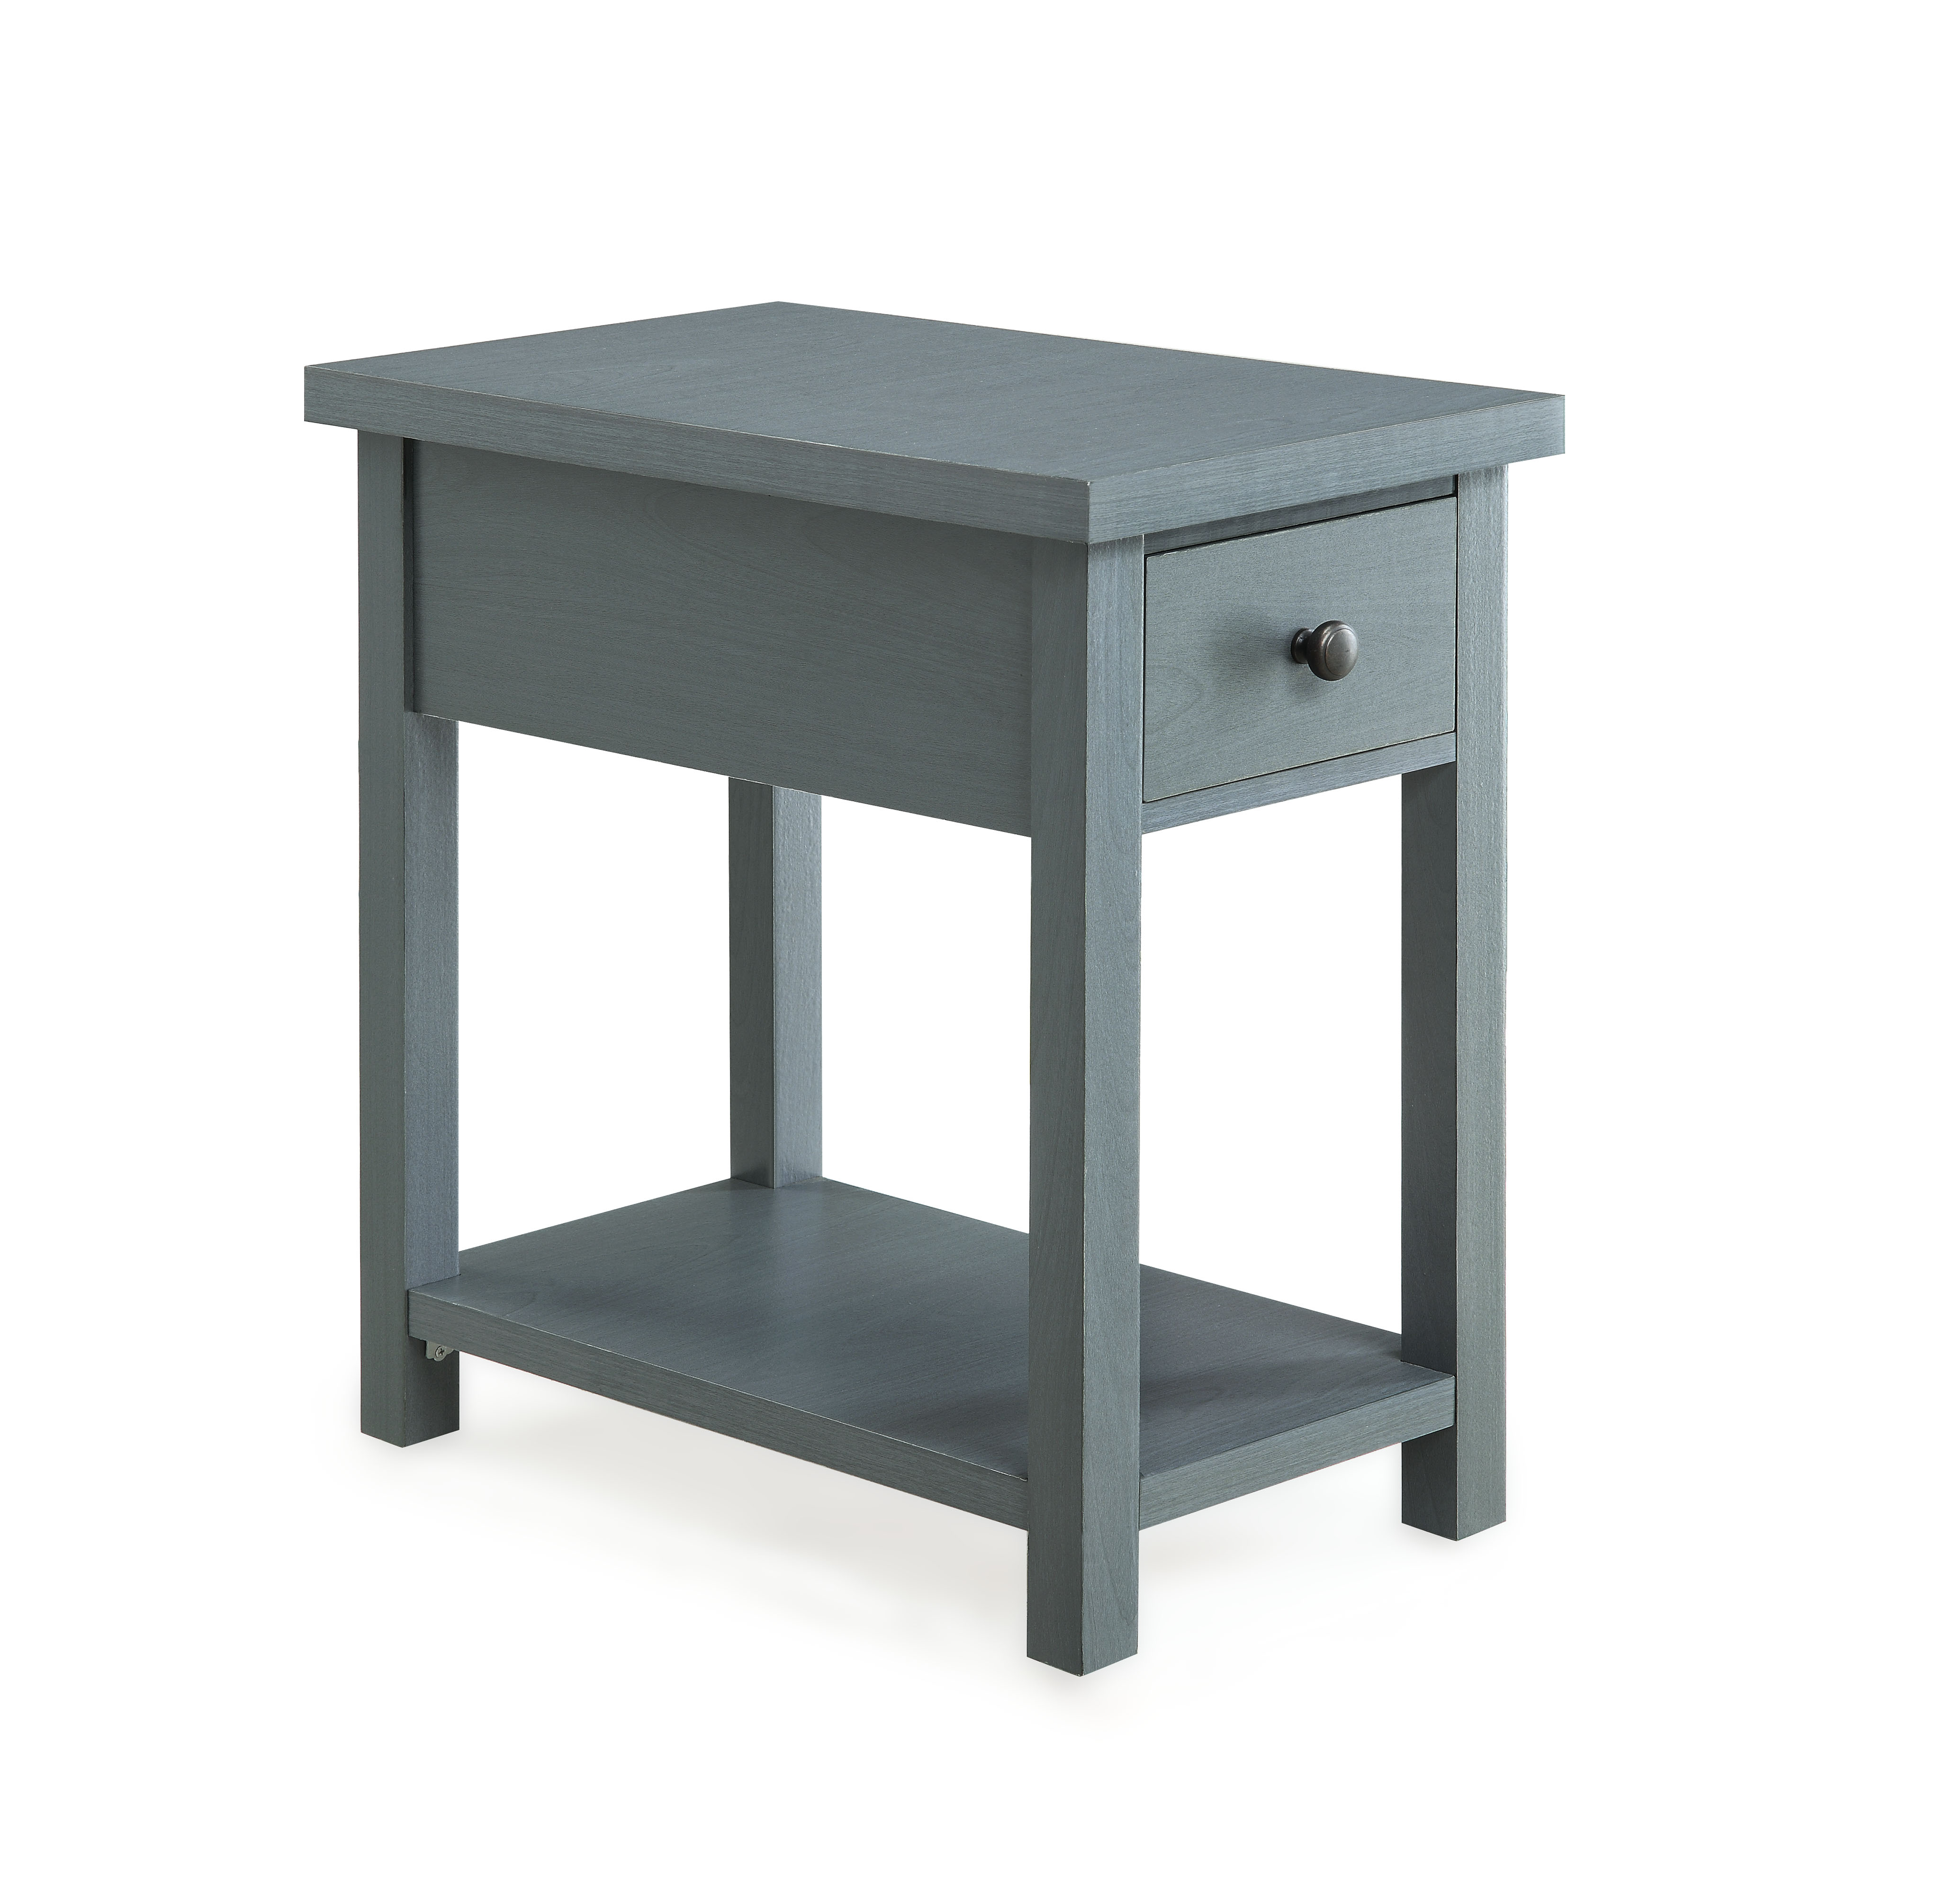 better homes gardens oxford square end table with drawer target accent room essentials available blue red file cabinet dale tiffany northlake lamp best chairs black side kohls